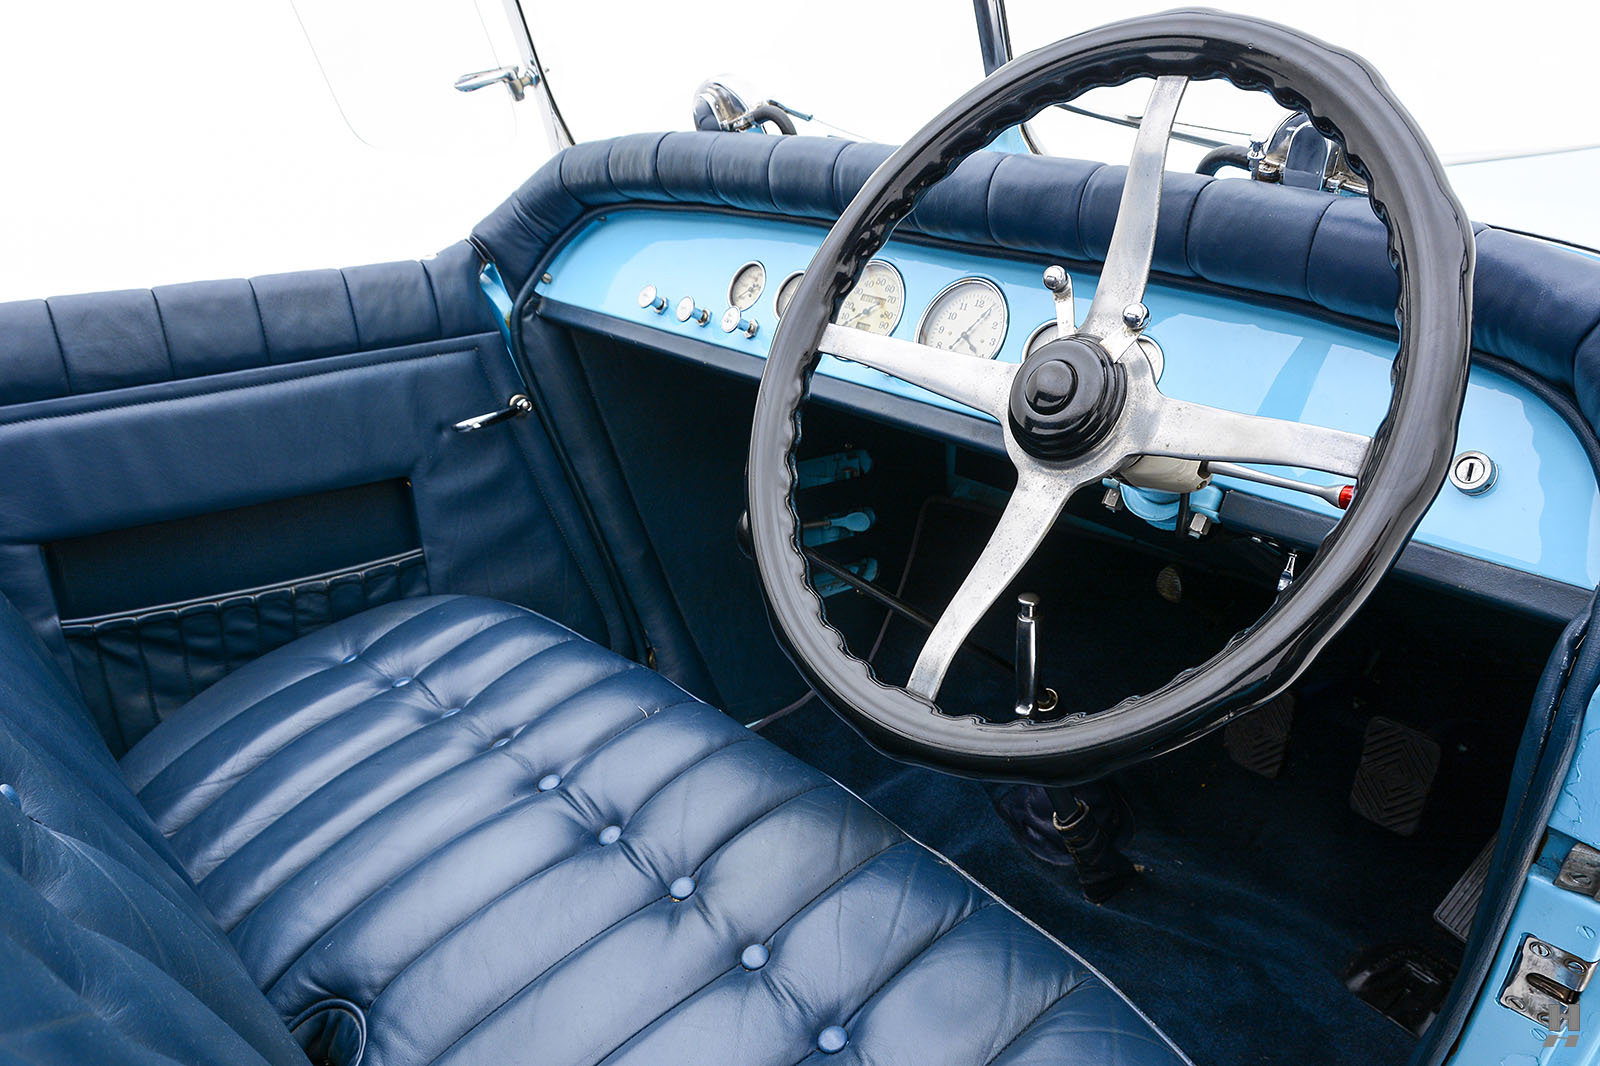 1931 CHRYSLER CG IMPERIAL DUAL COWL PHAETON For Sale (picture 4 of 6)